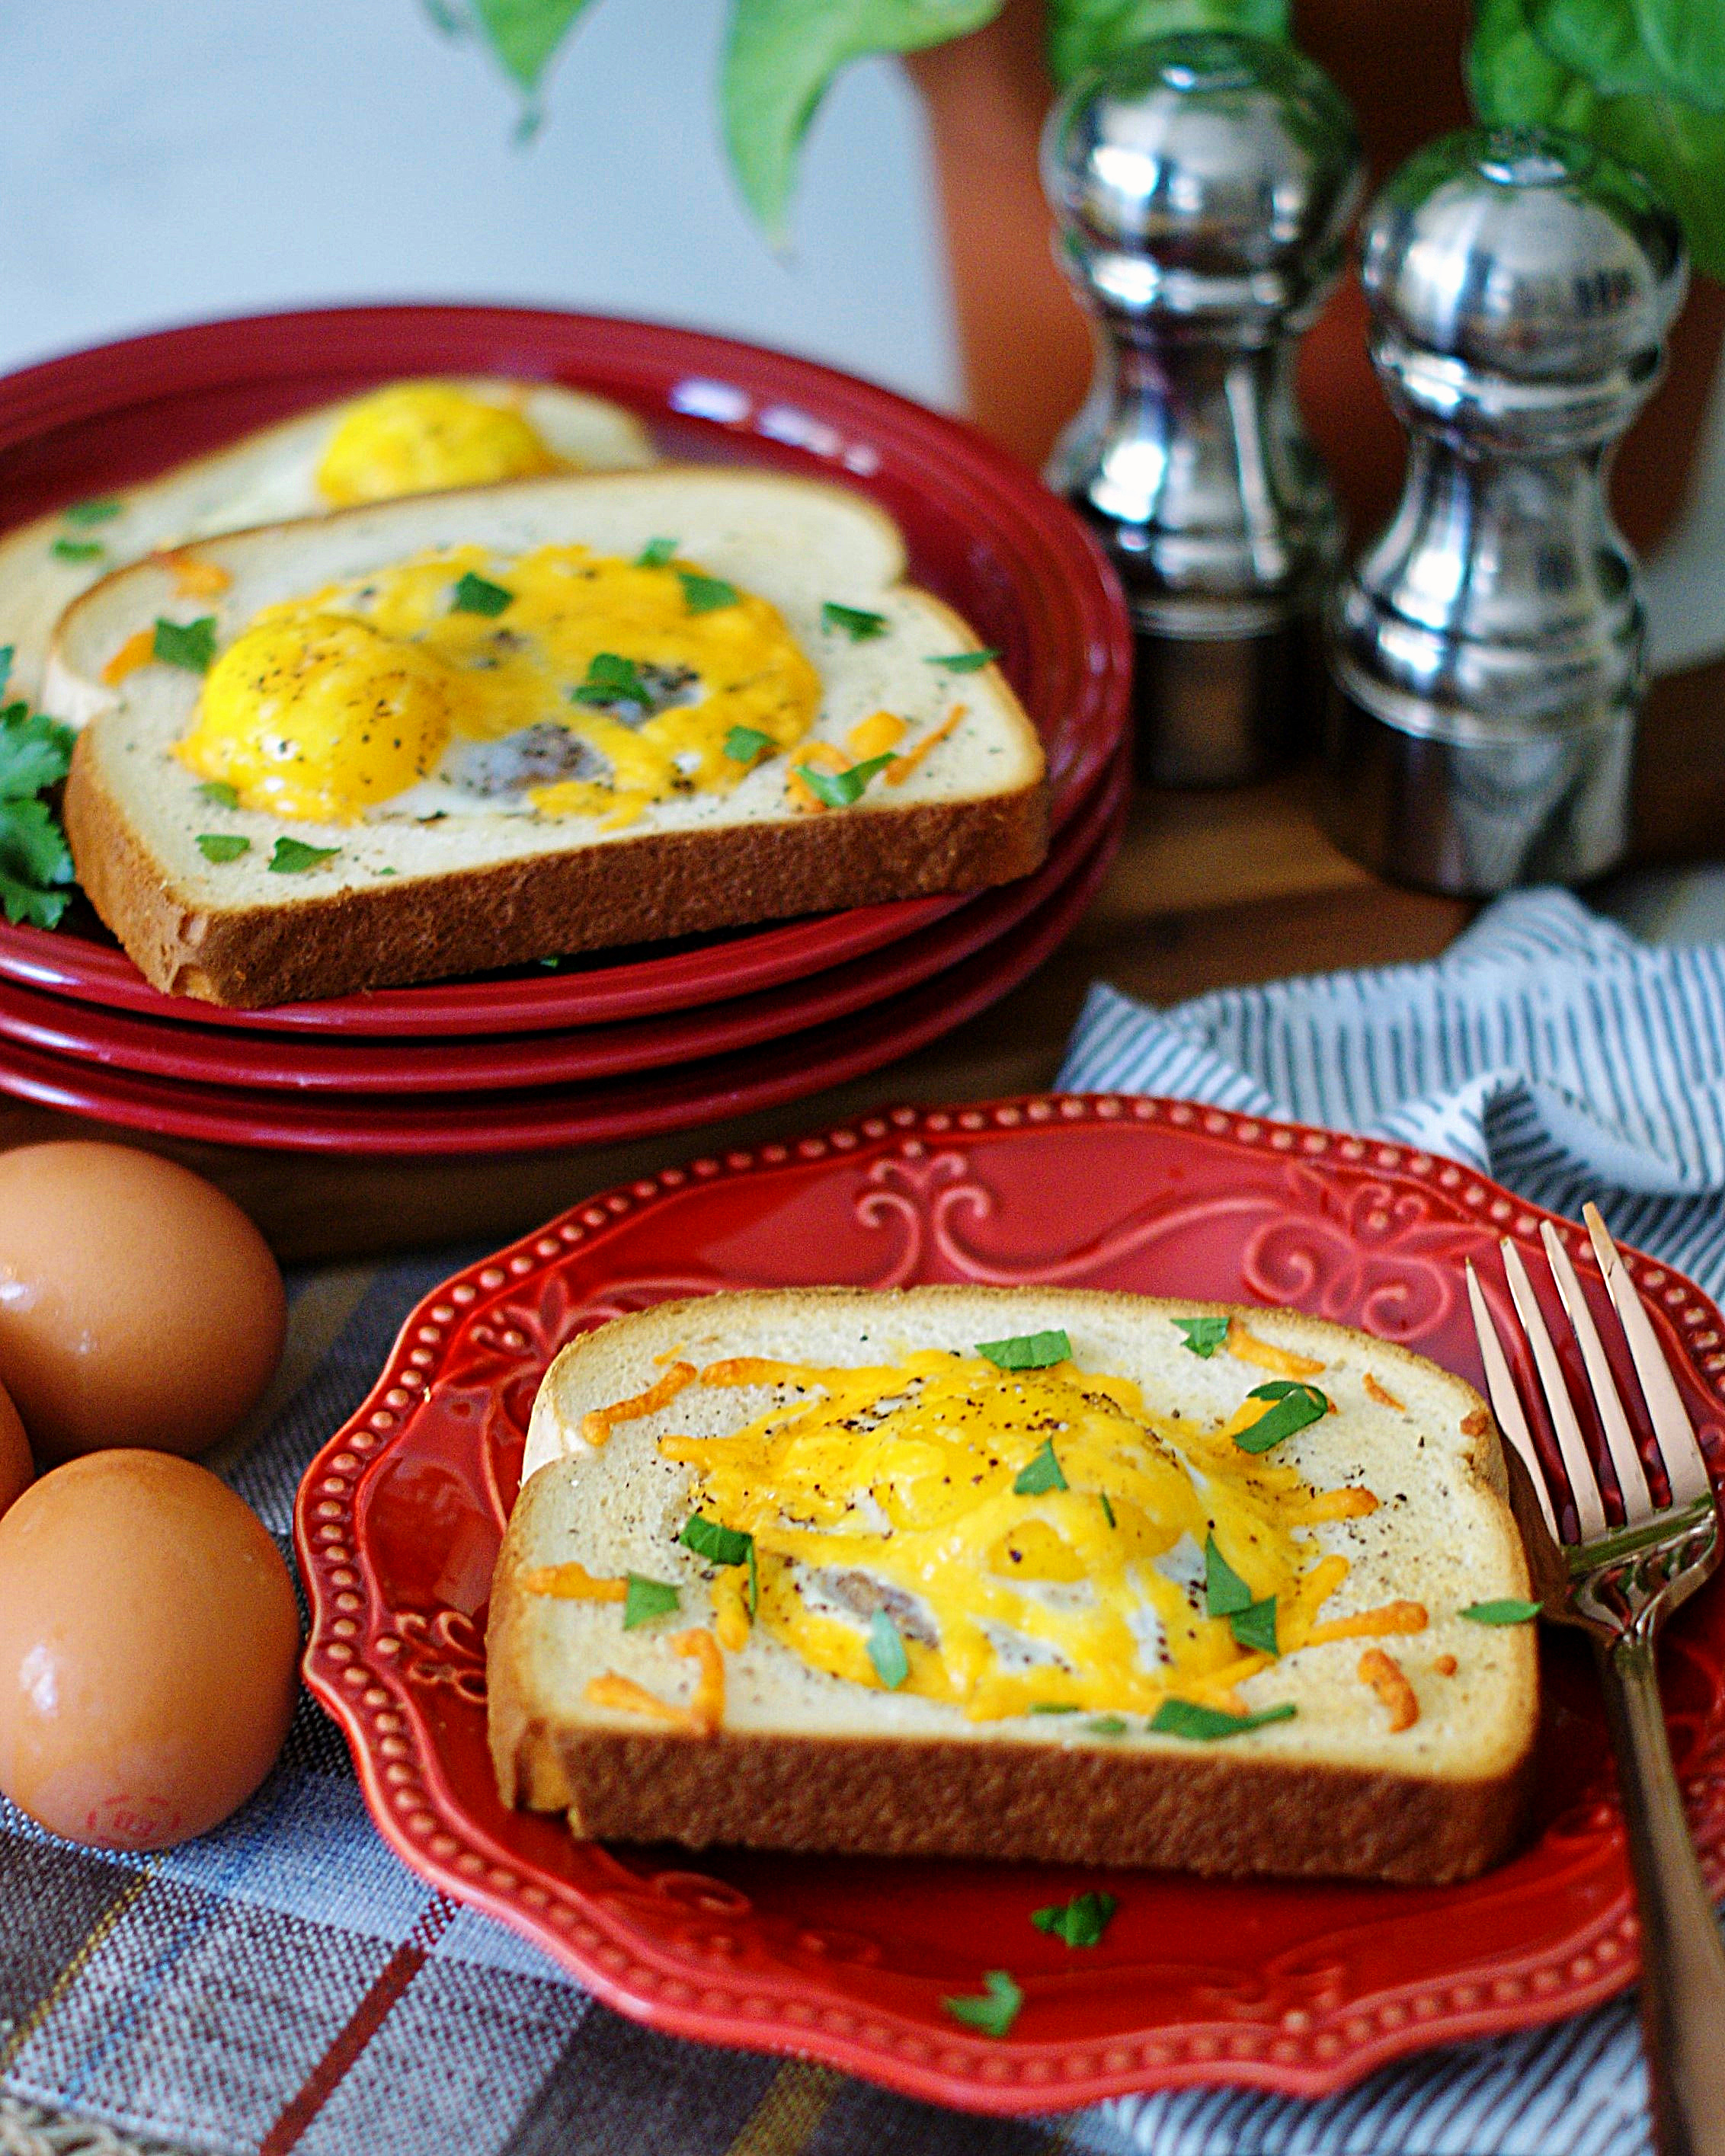 3 eggs in a basket on red plates ready for breakfast.